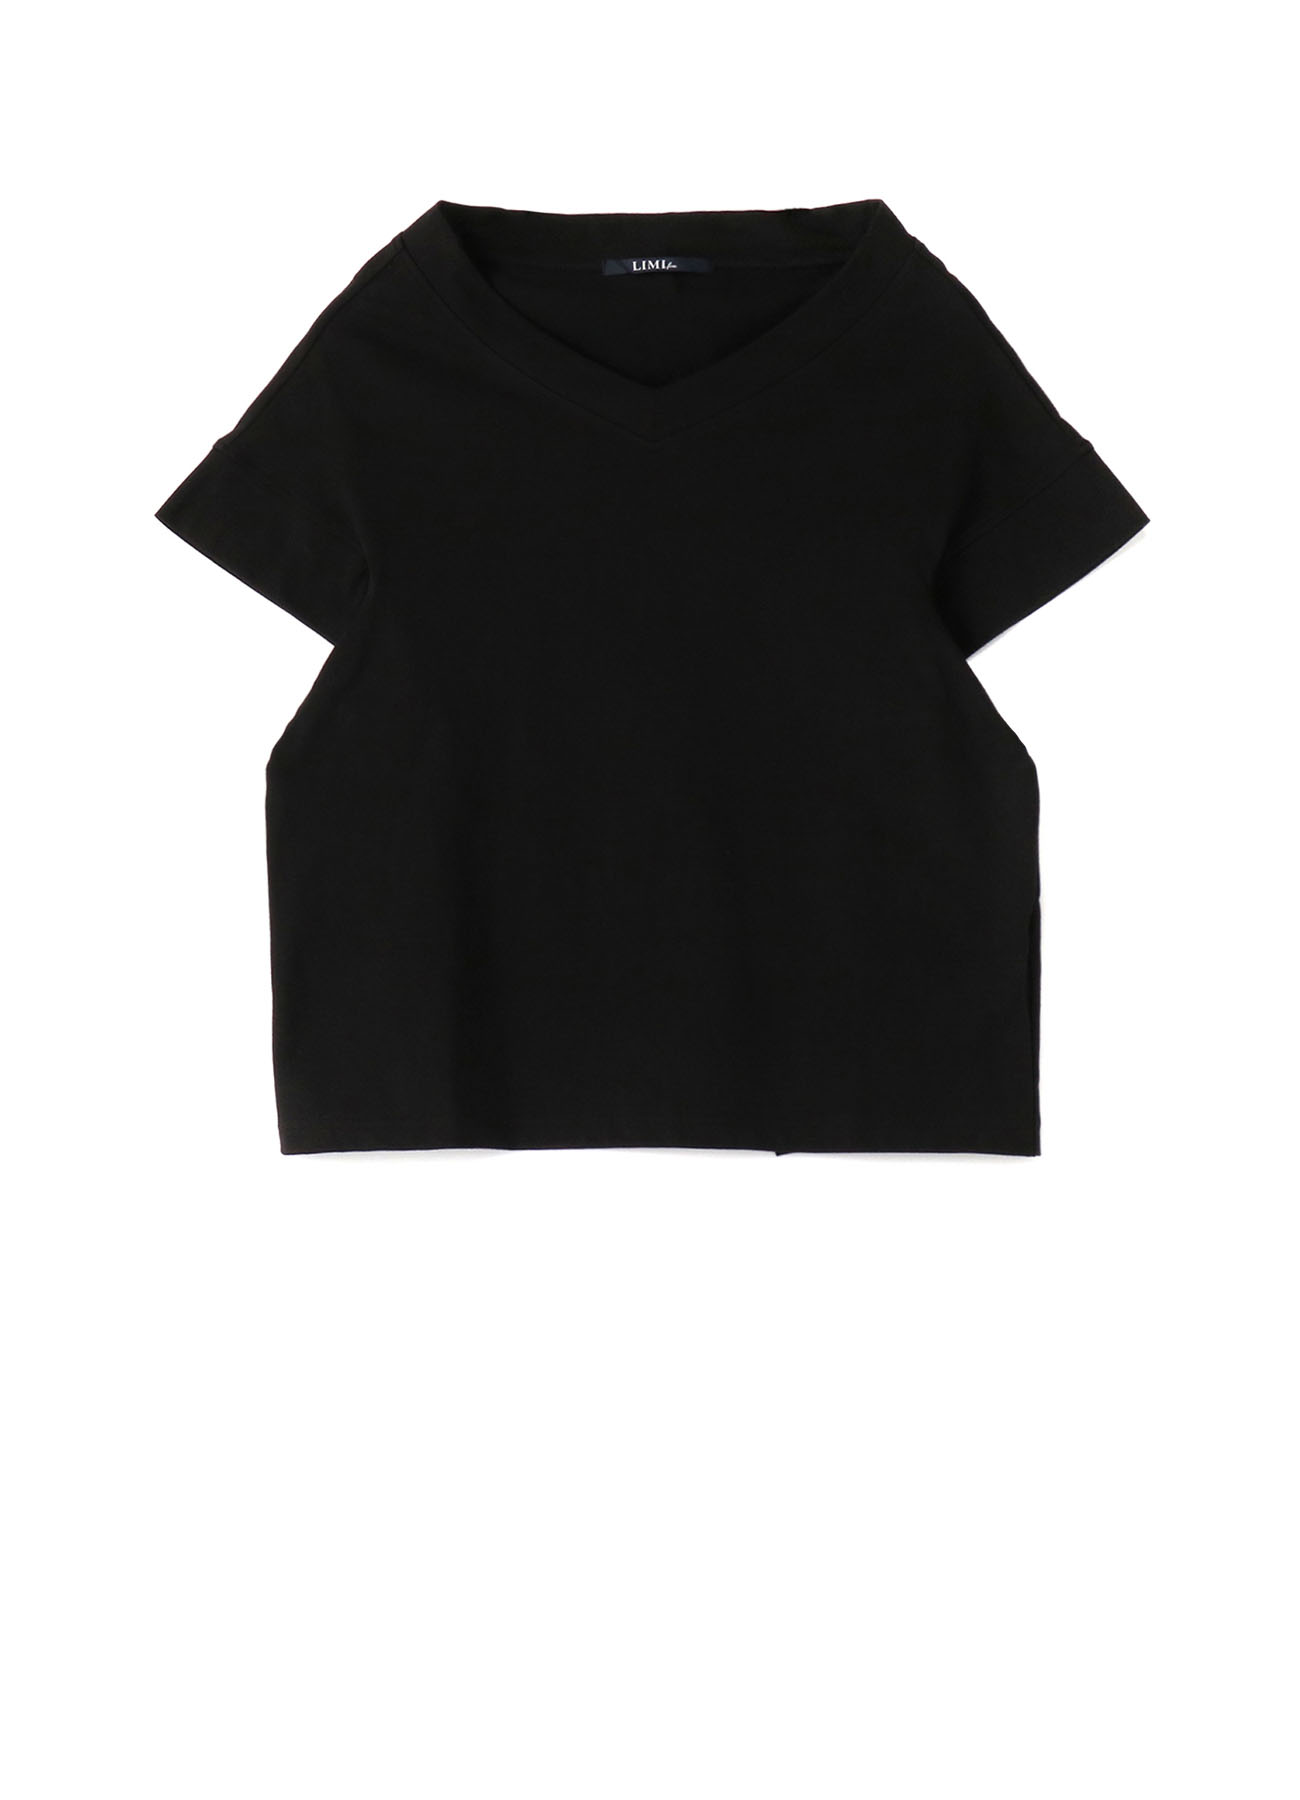 Random Net Embroidery V-Neck T